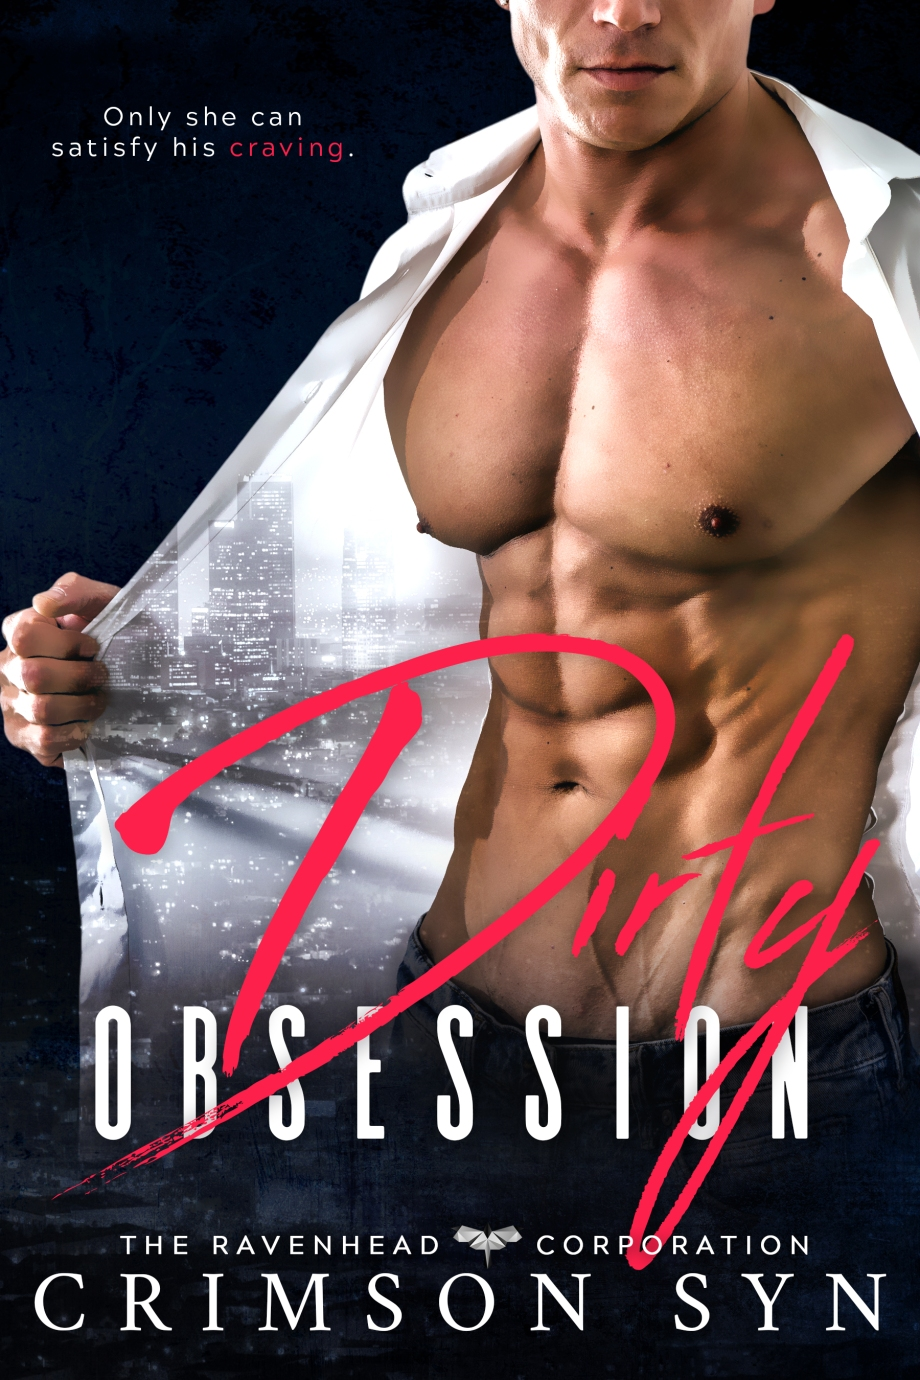 Dirty Obsession New Cover